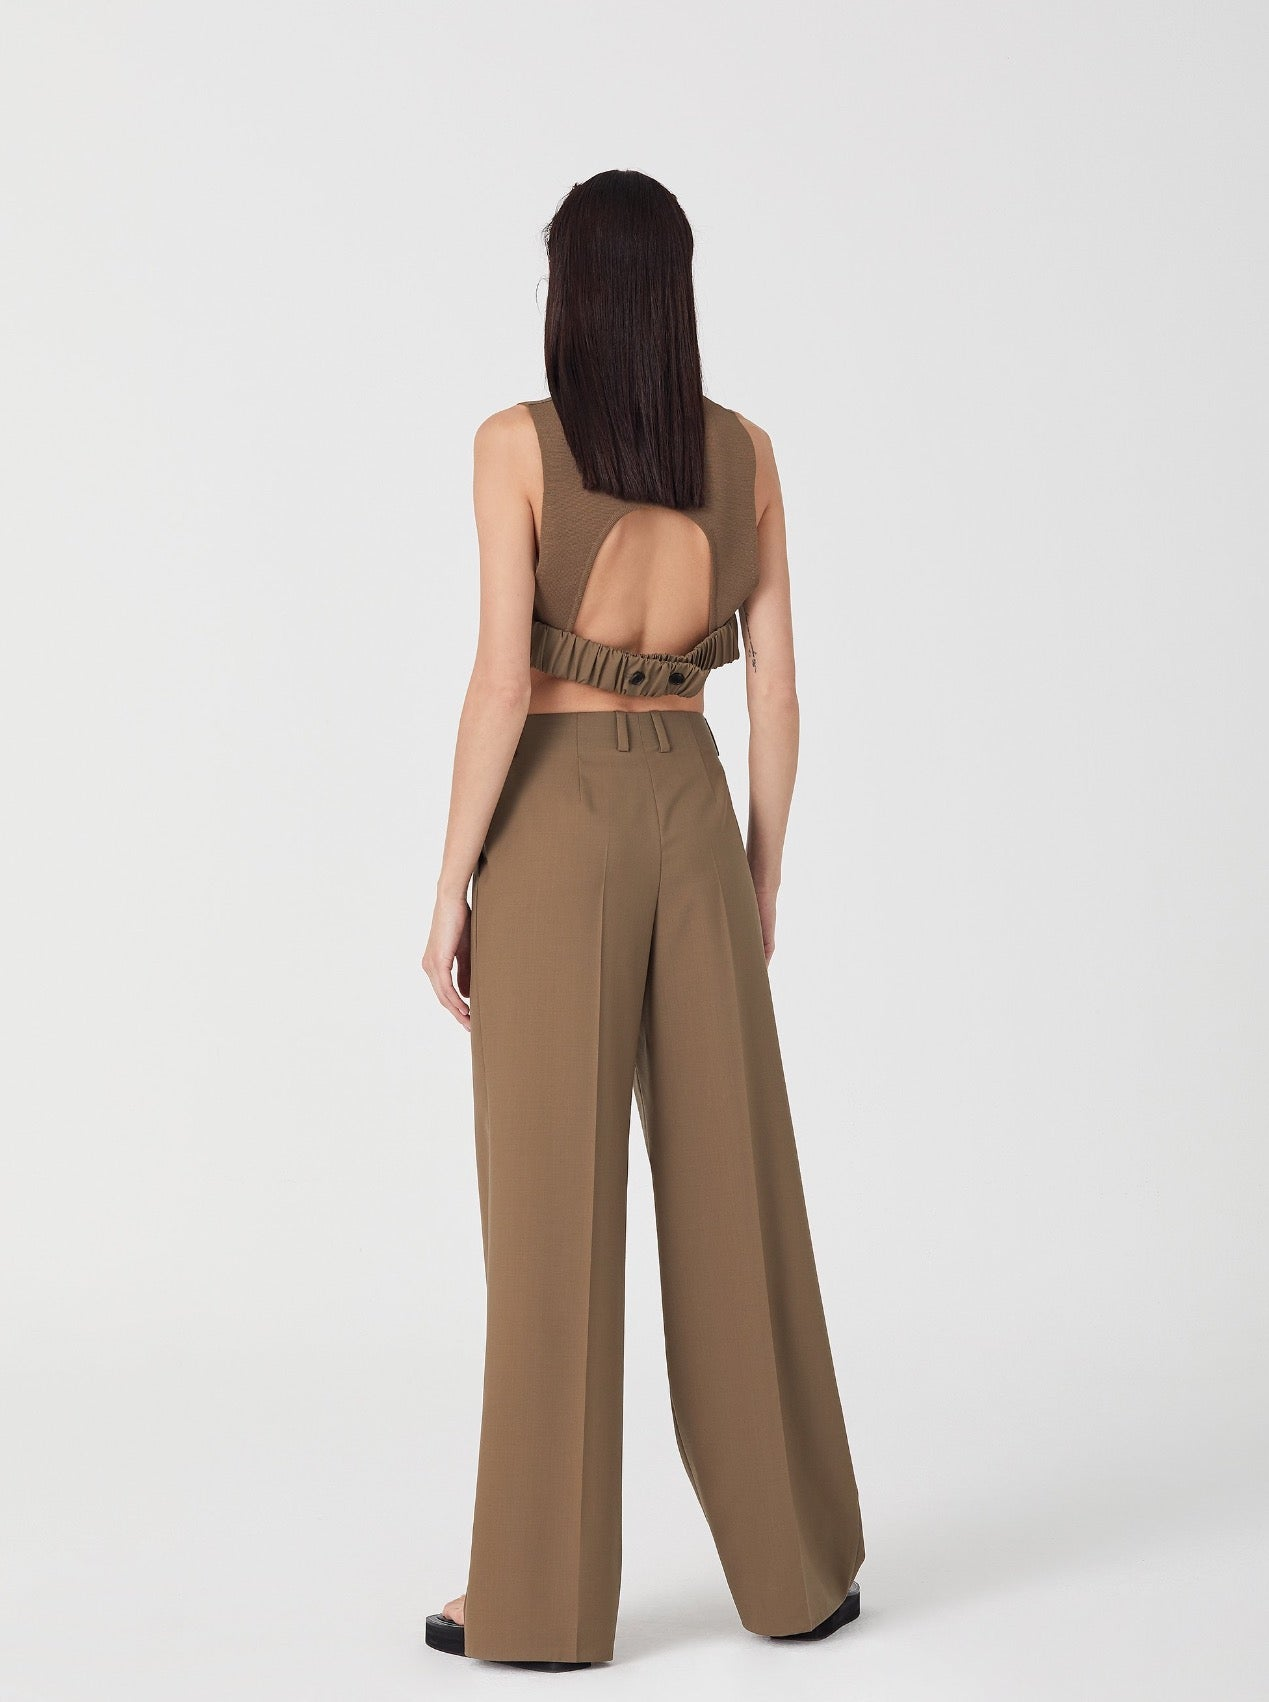 KHAKI BEIGE SL OPEN BACK TOP